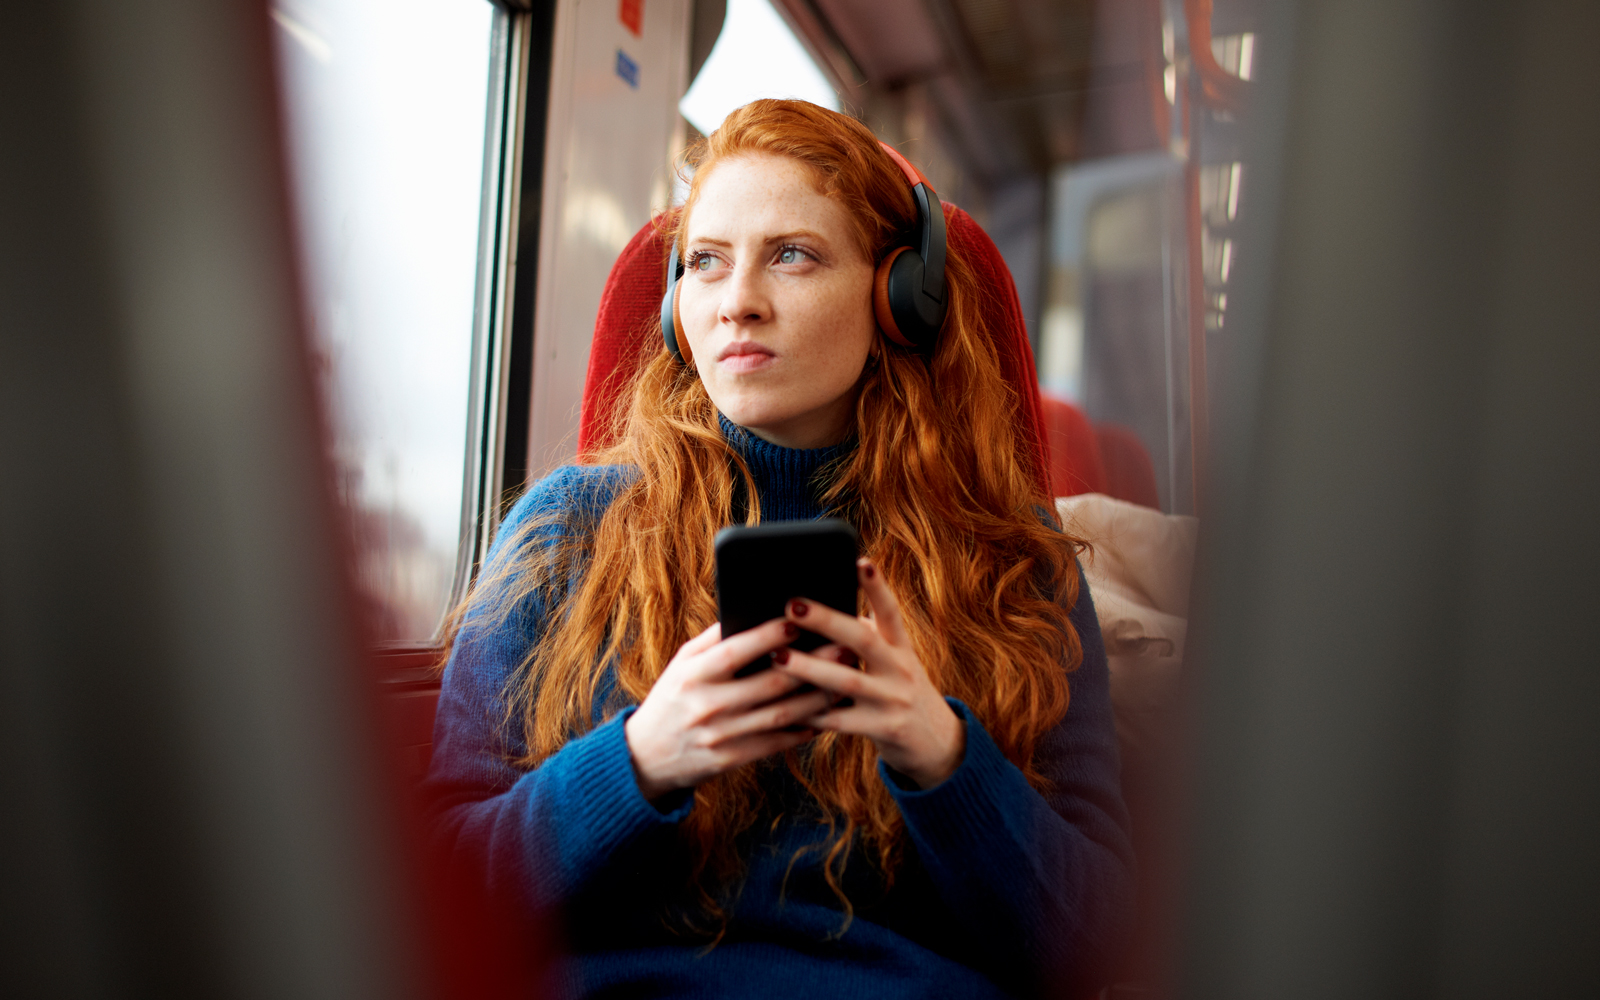 Woman traveling with headphones